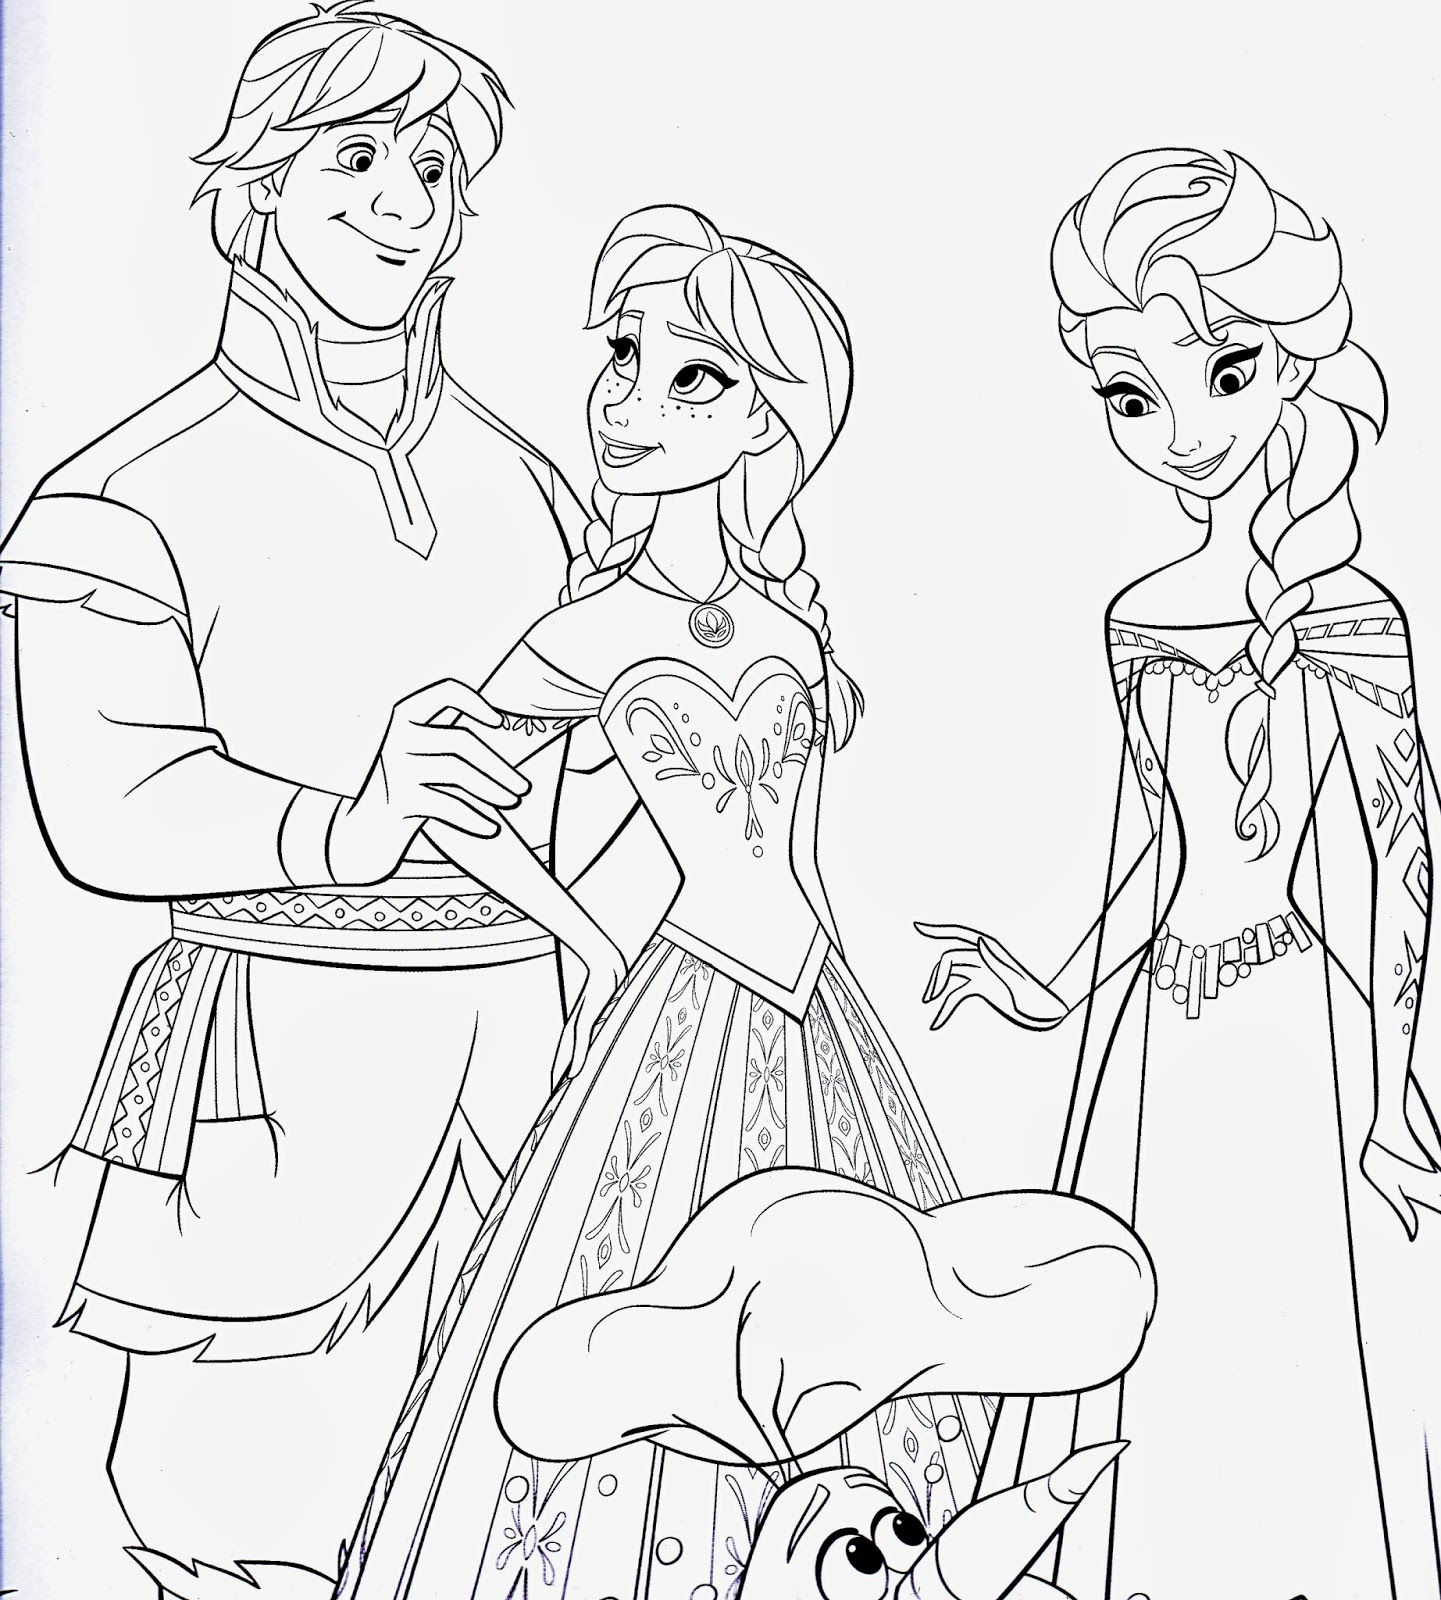 Coloring Pages: Frozen Coloring Pages Free and Printable